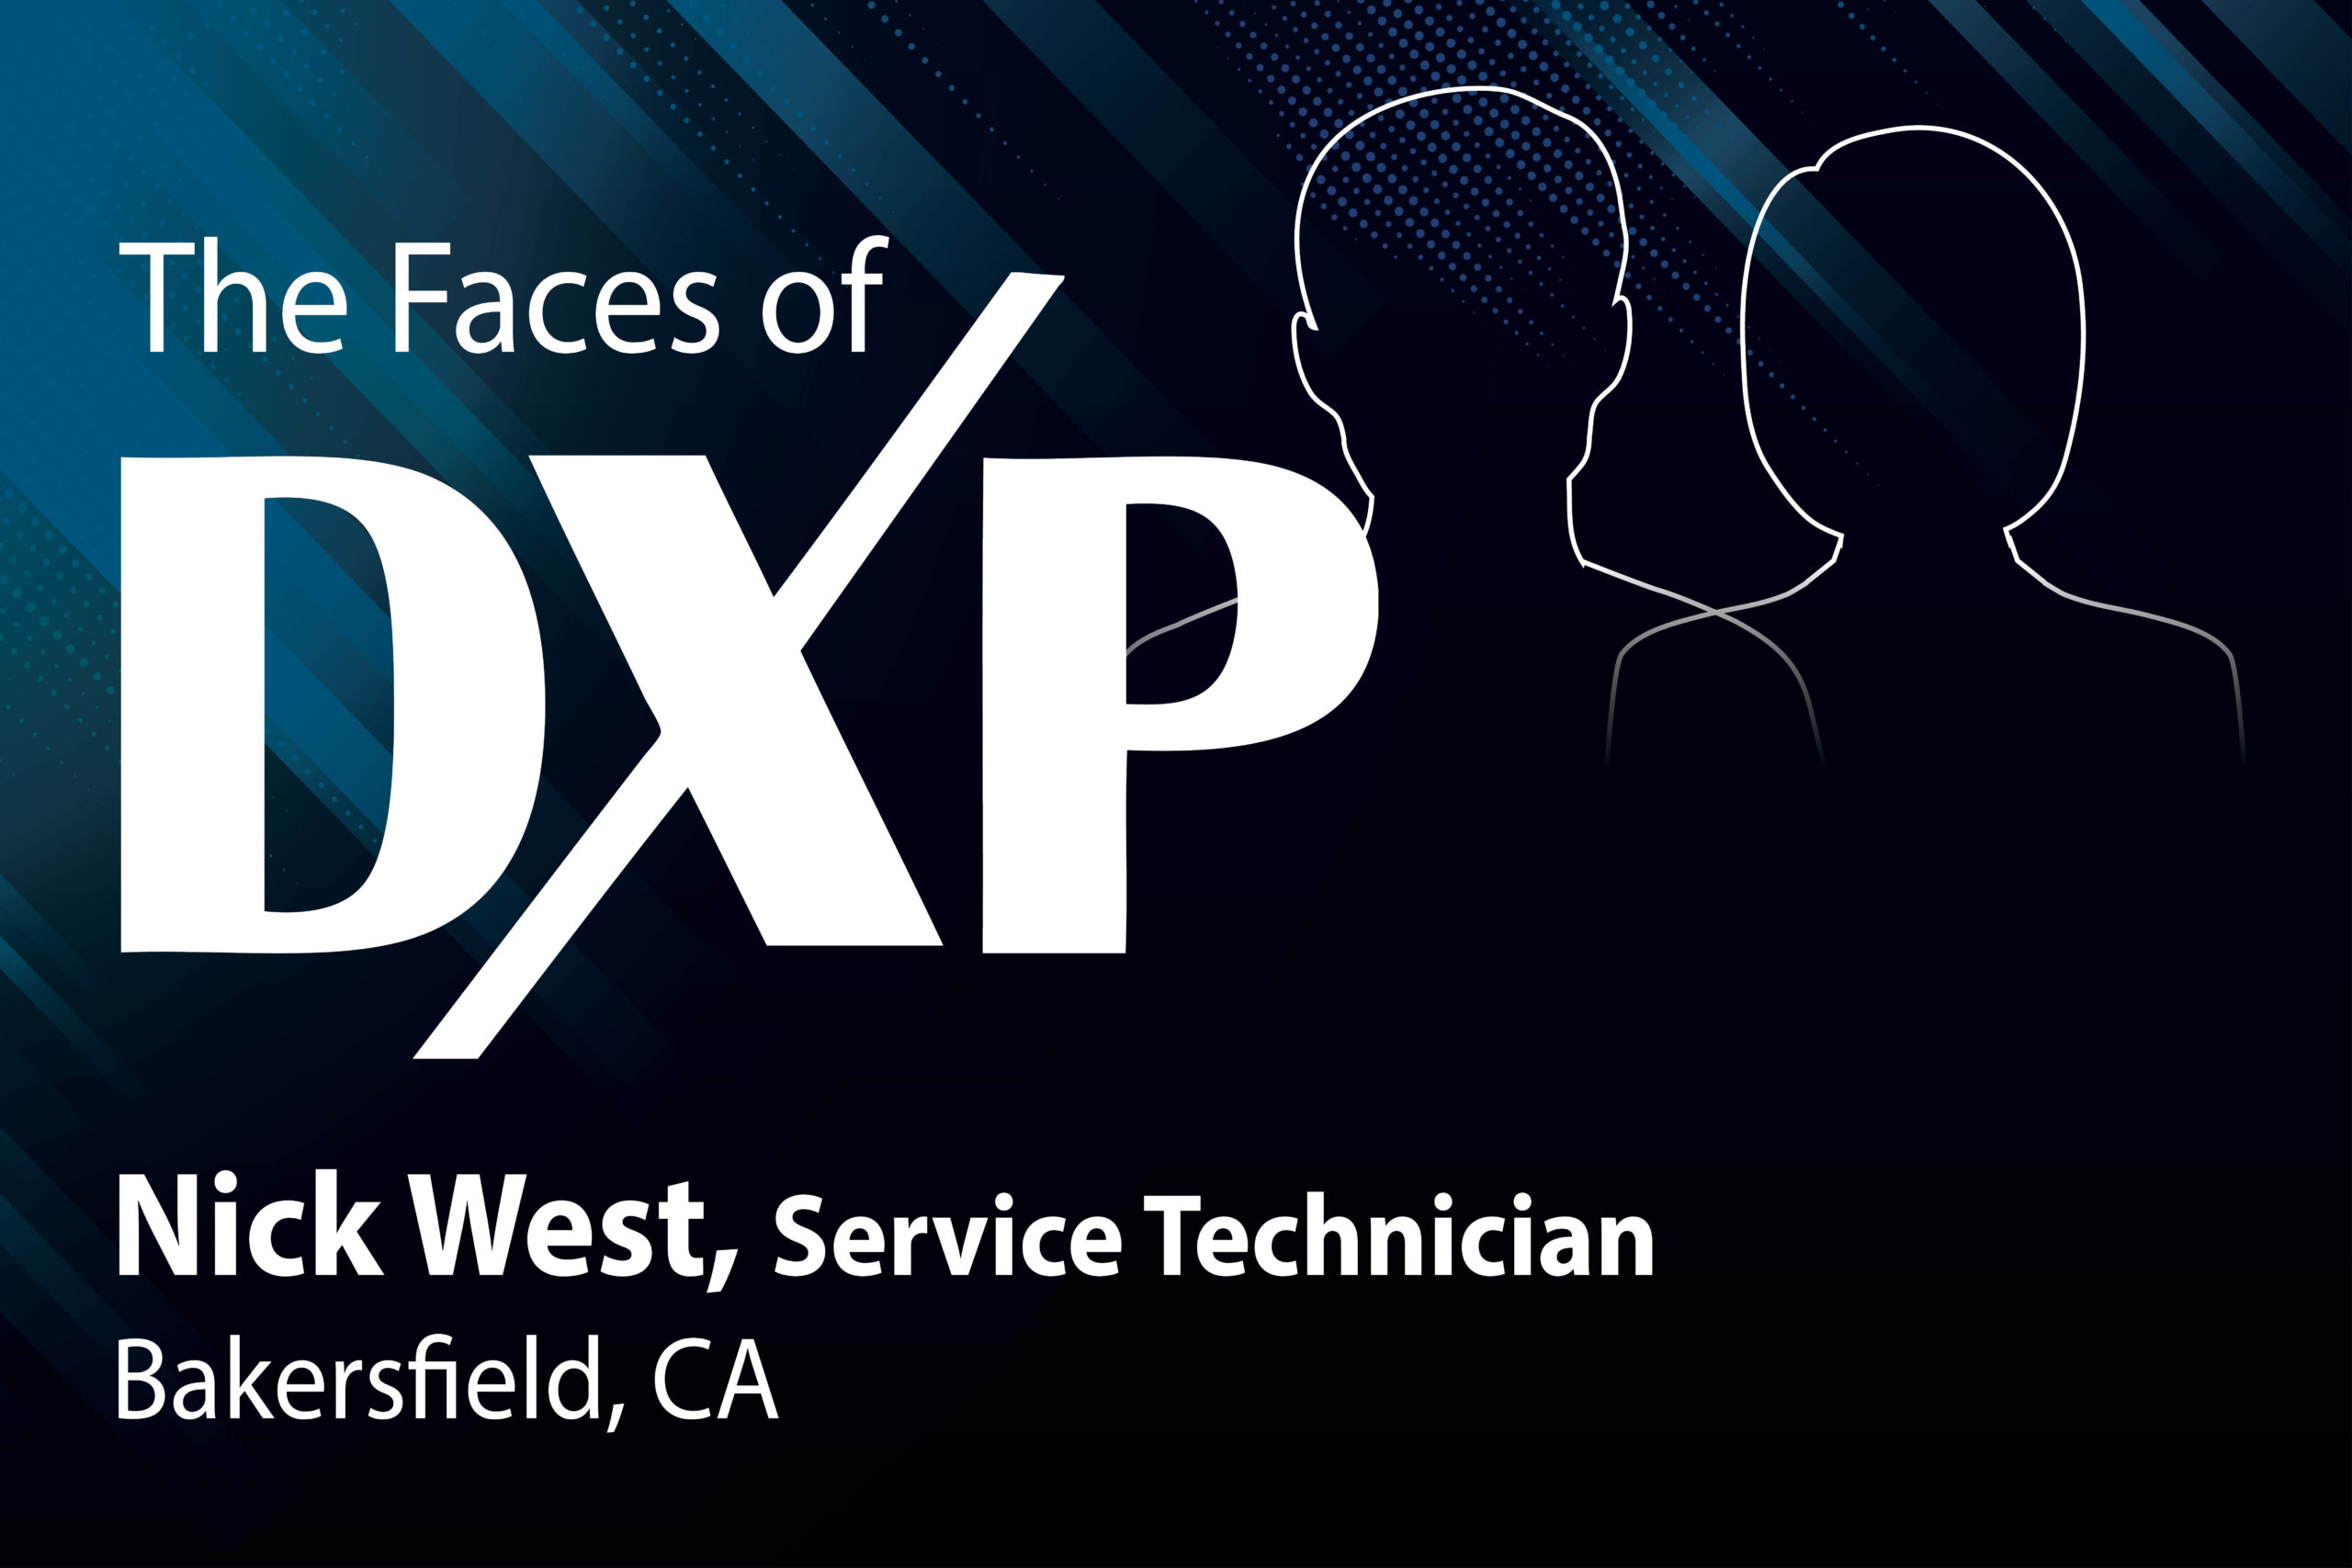 The Faces of DXP Cortech—Nick West, Service Technician